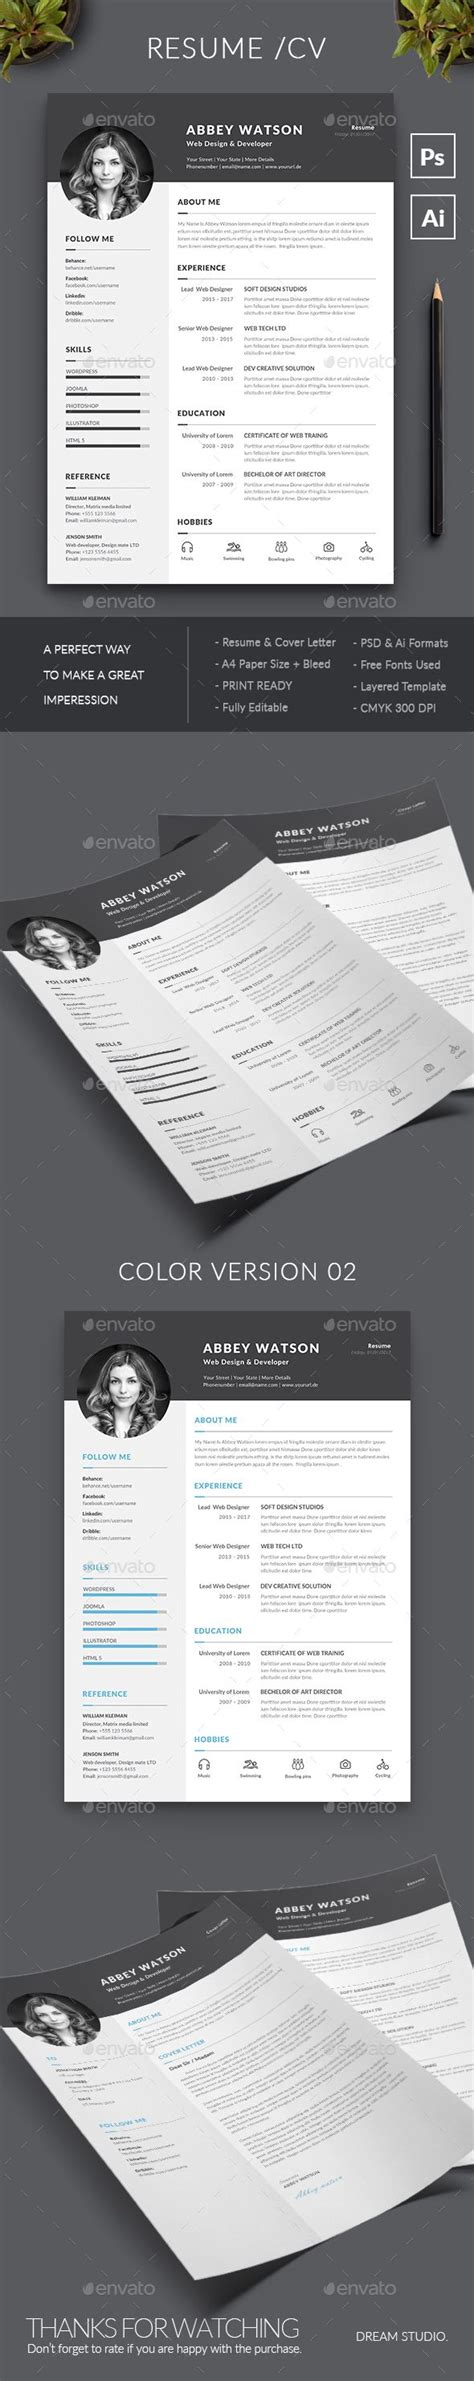 Best Cv Exles by Eg Of Cv 15 Best Cv Exles Guaranteed To Get You Hired